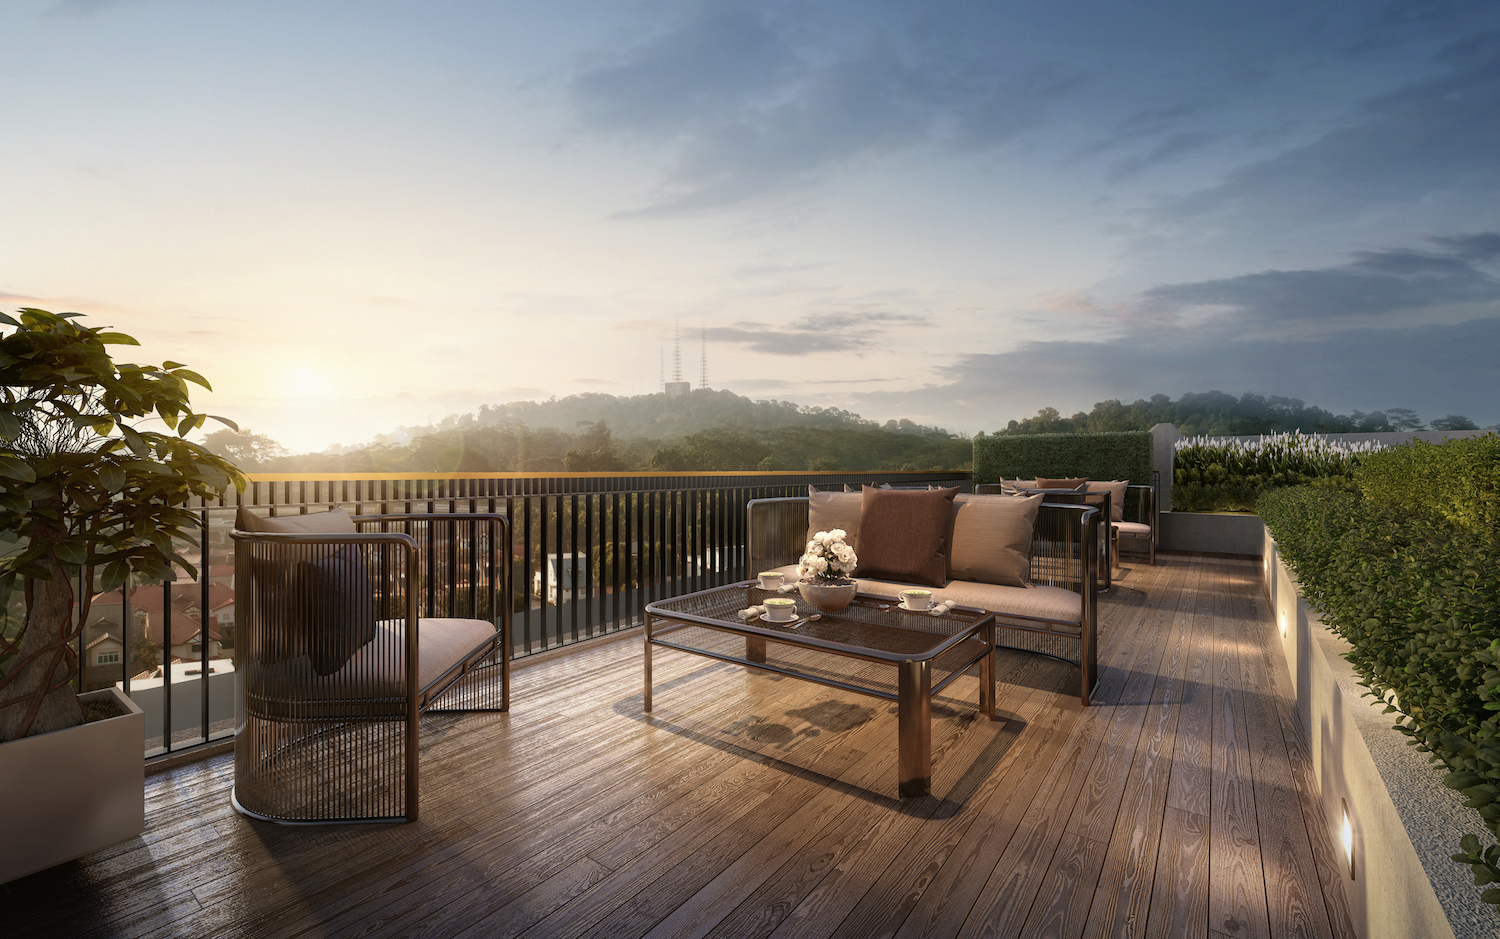 Enjoy the greenery view at Mayfair Gardens roof terrace